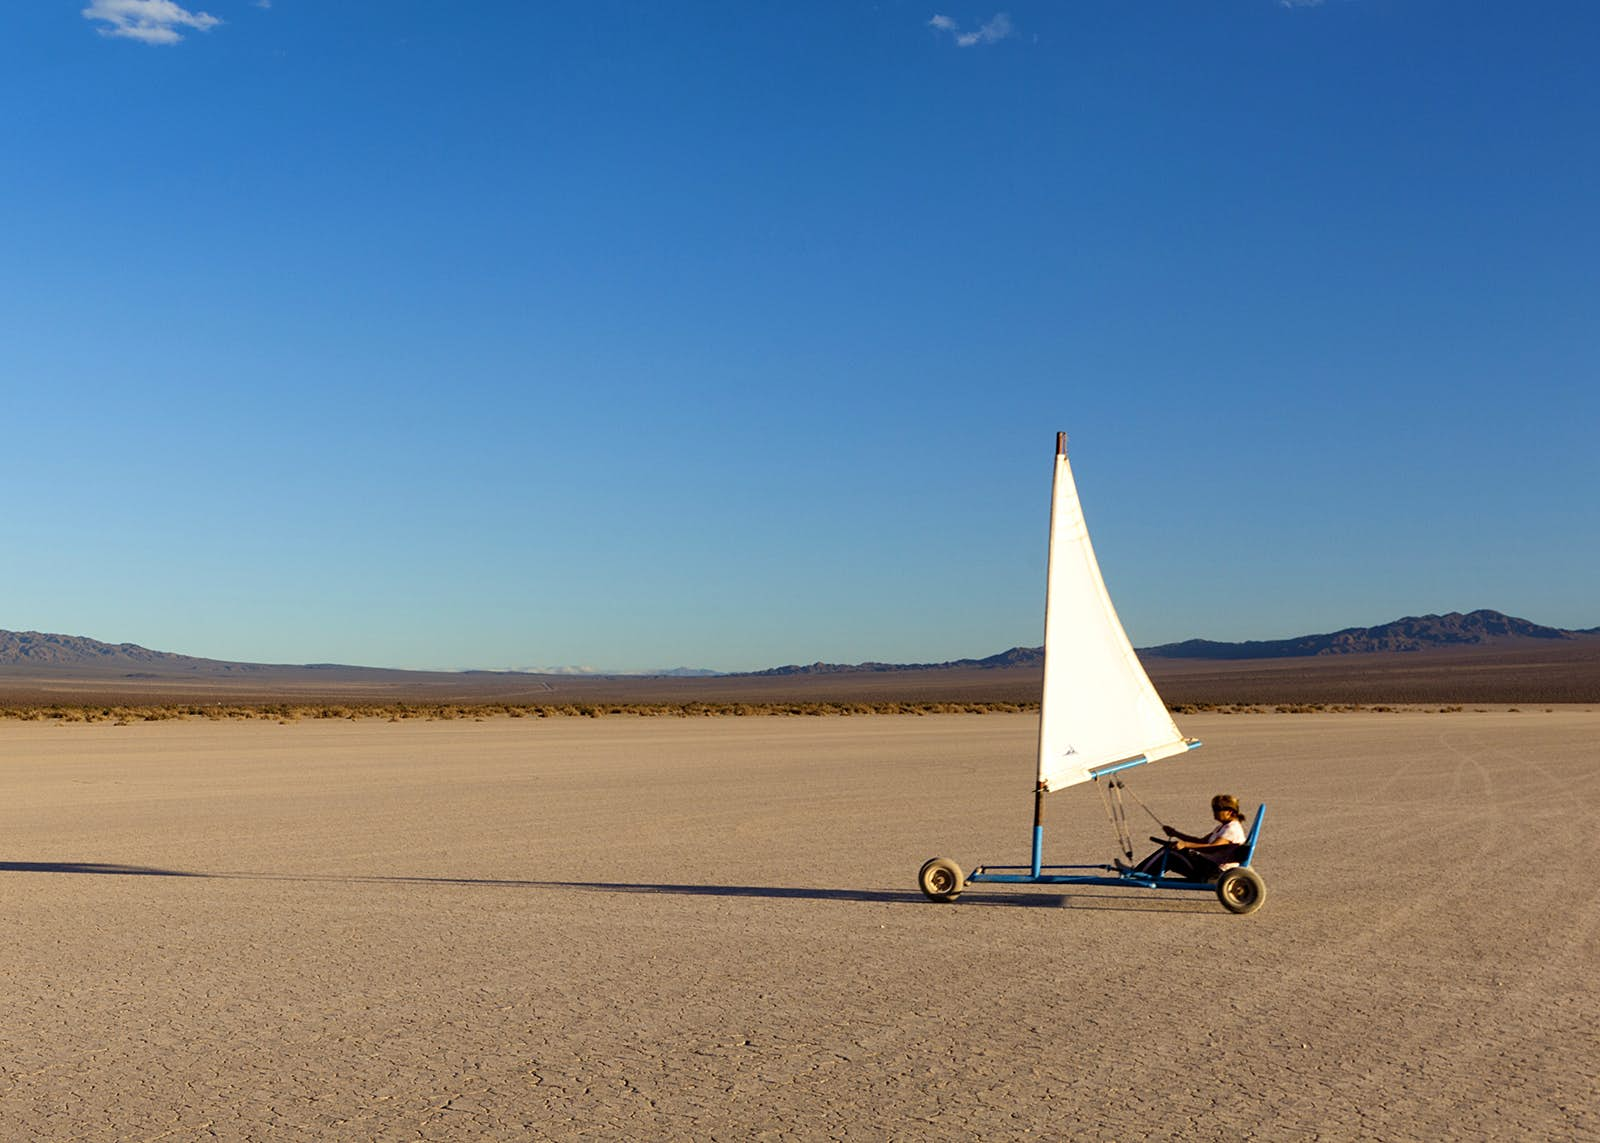 landsailing_argentina_Lonely_Planet-5a09